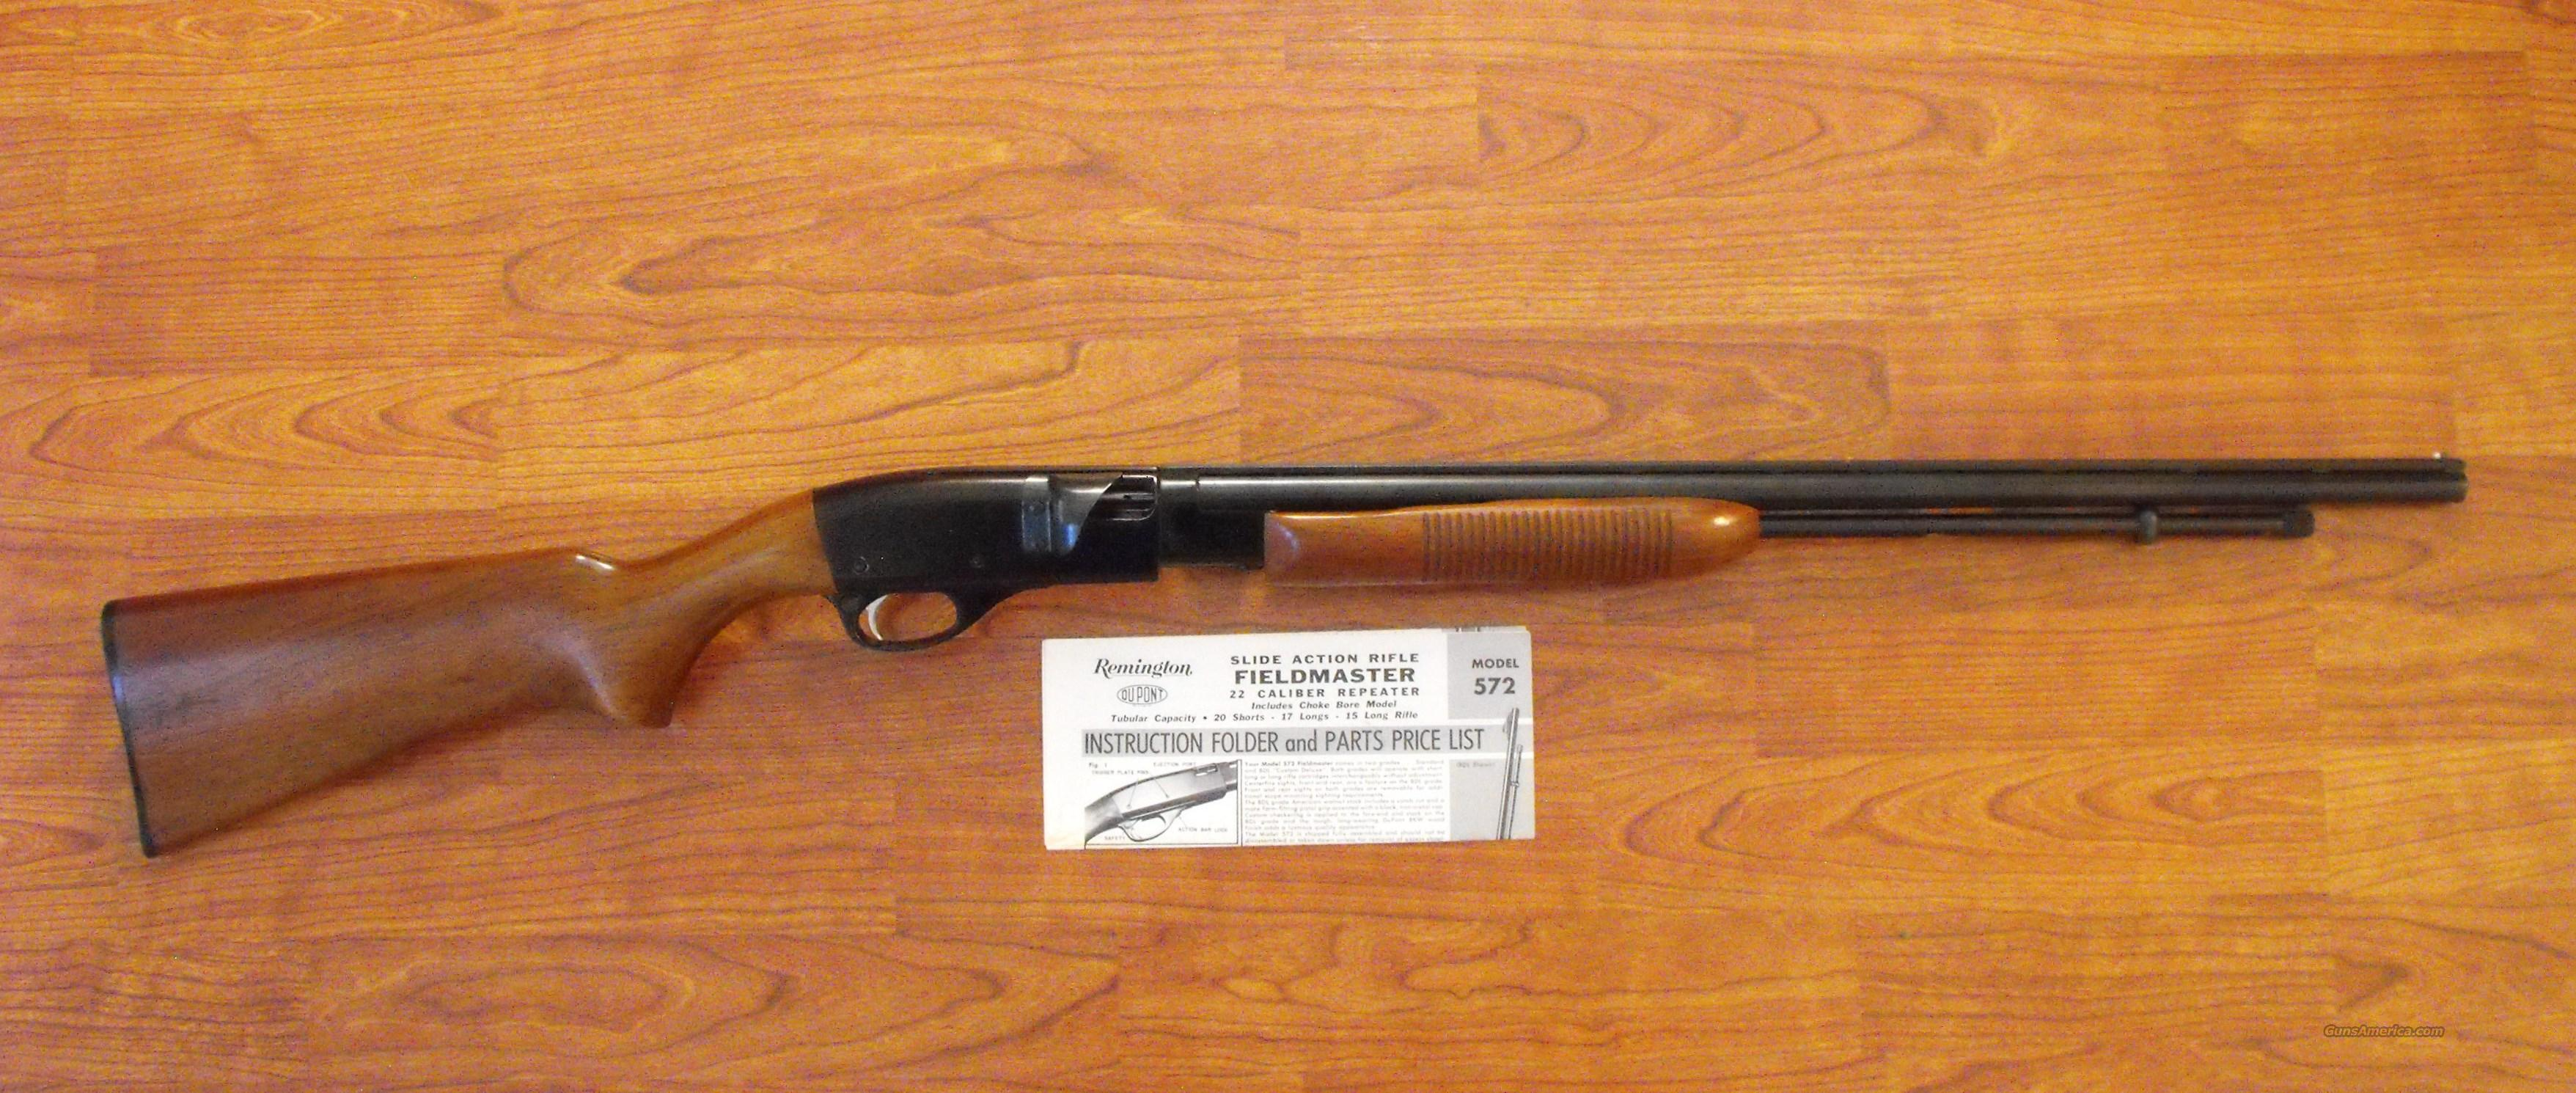 Remington Model 572-SB  Guns > Rifles > Remington Rifles - Modern > .22 Rimfire Models